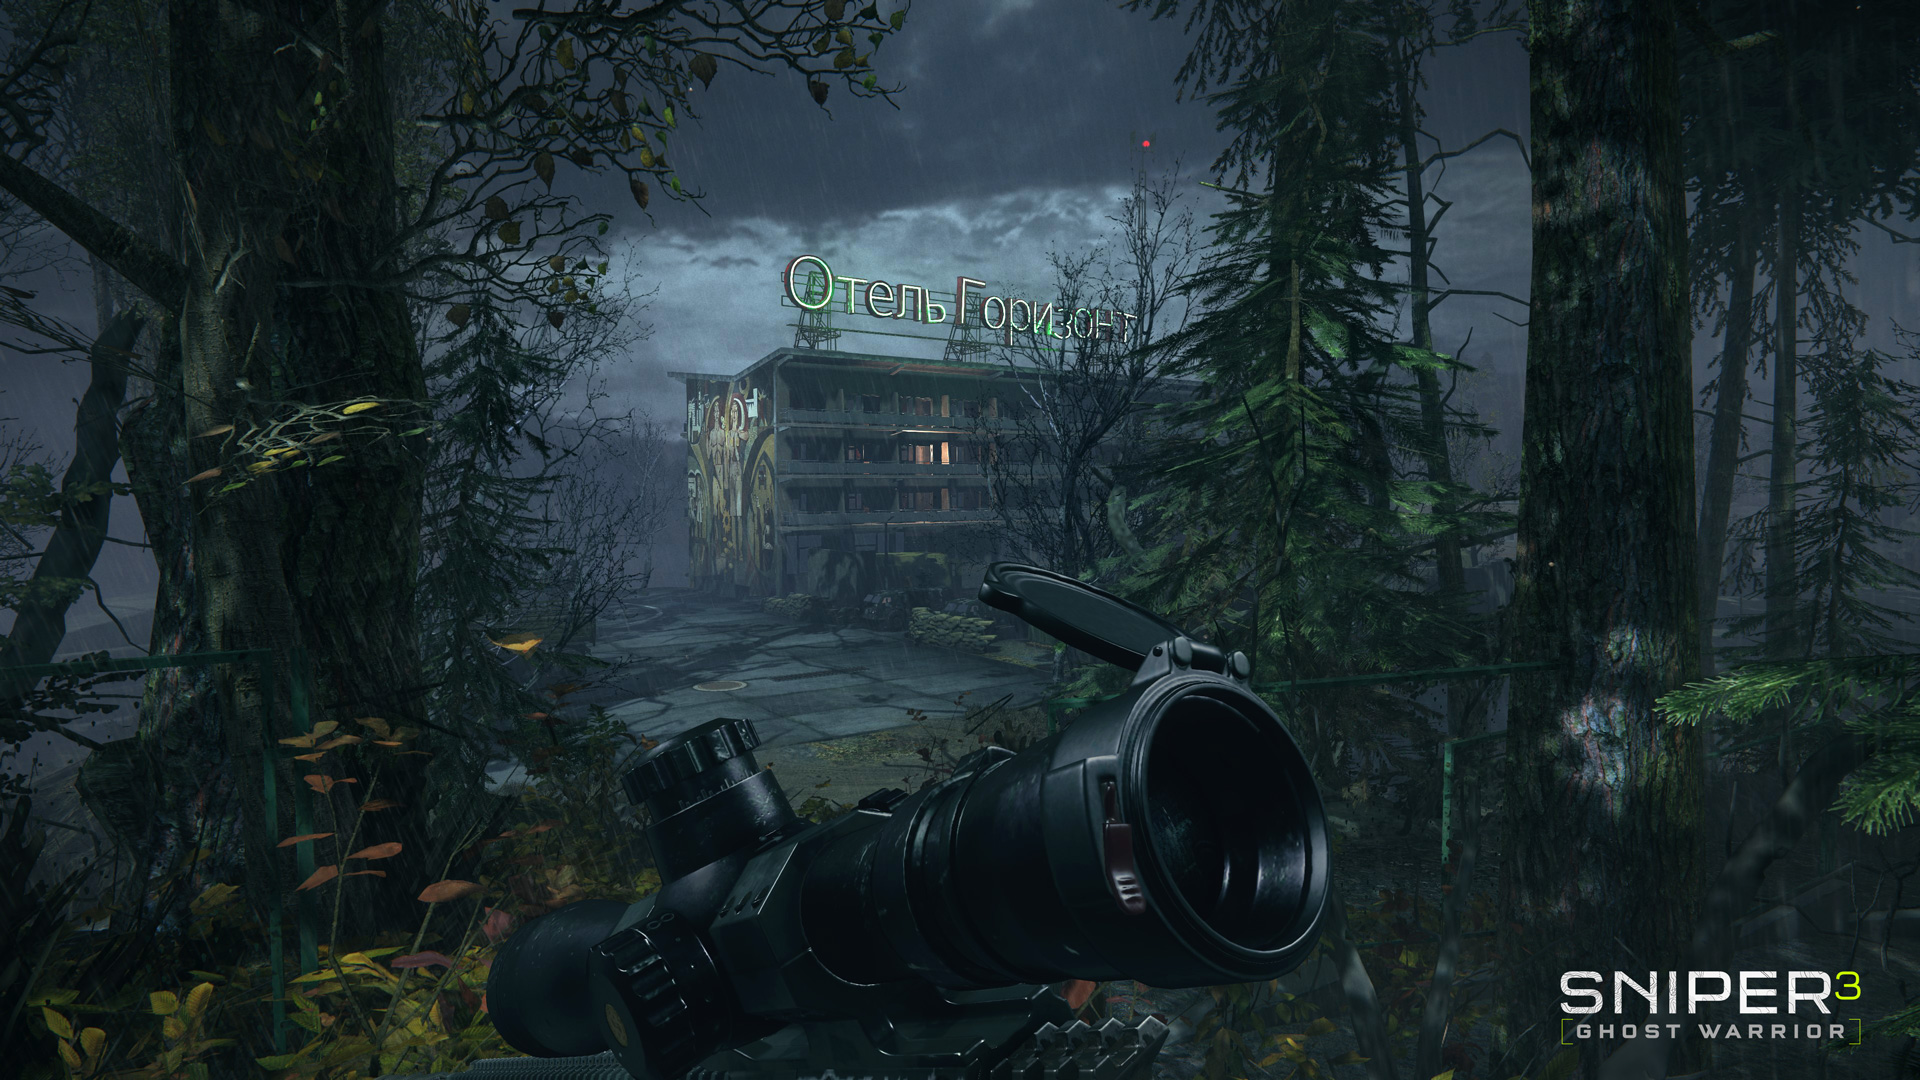 Sniper: Ghost Warrior 3 looks great on Cryengine 3